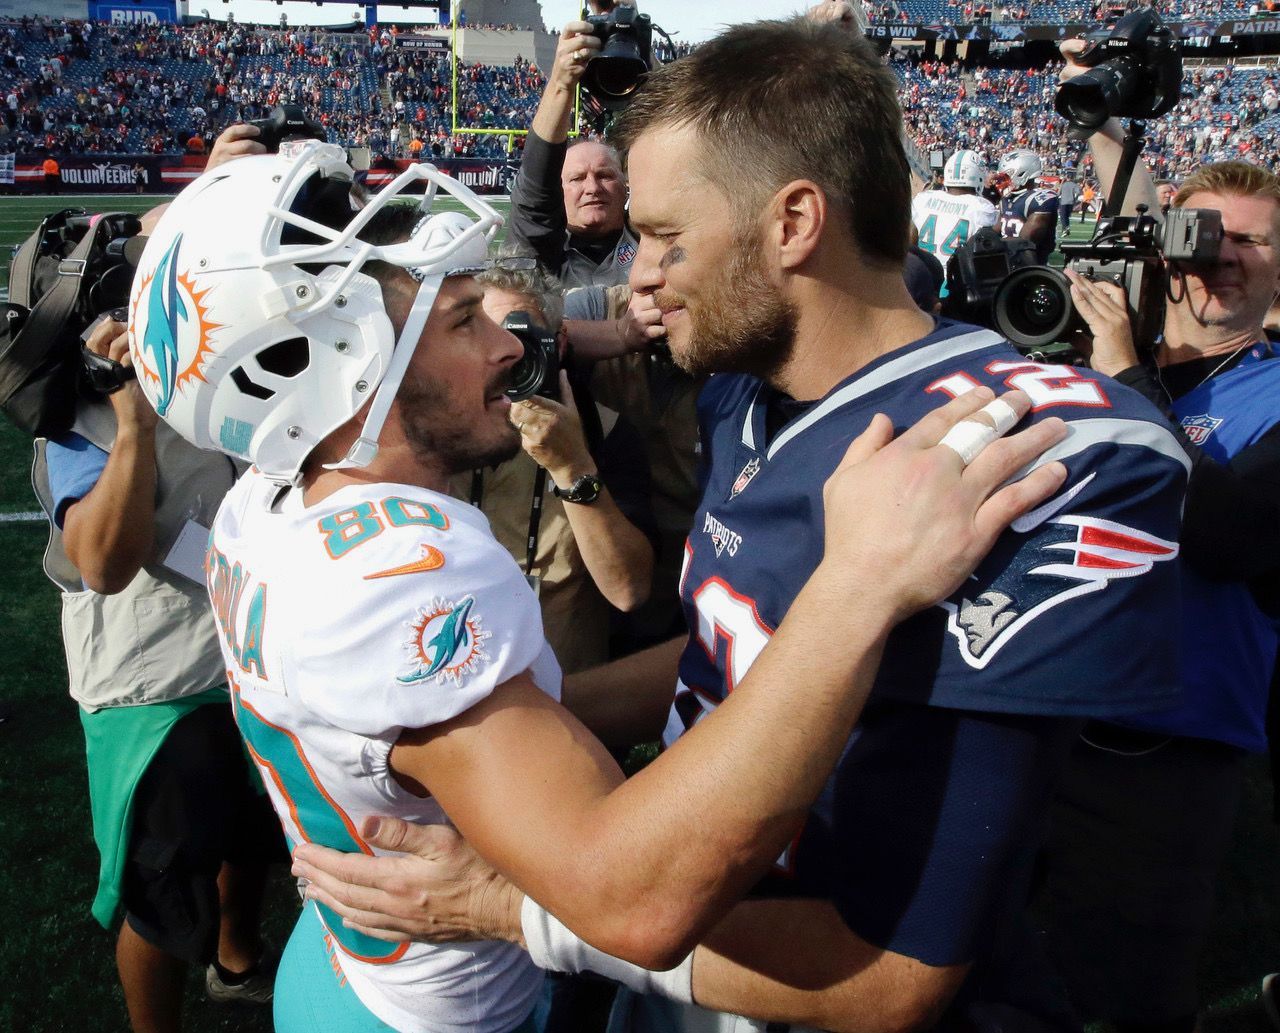 Still Love You Danny Always A Patriot To Us Pats Fans Patriots Football New England Patriots England Sports